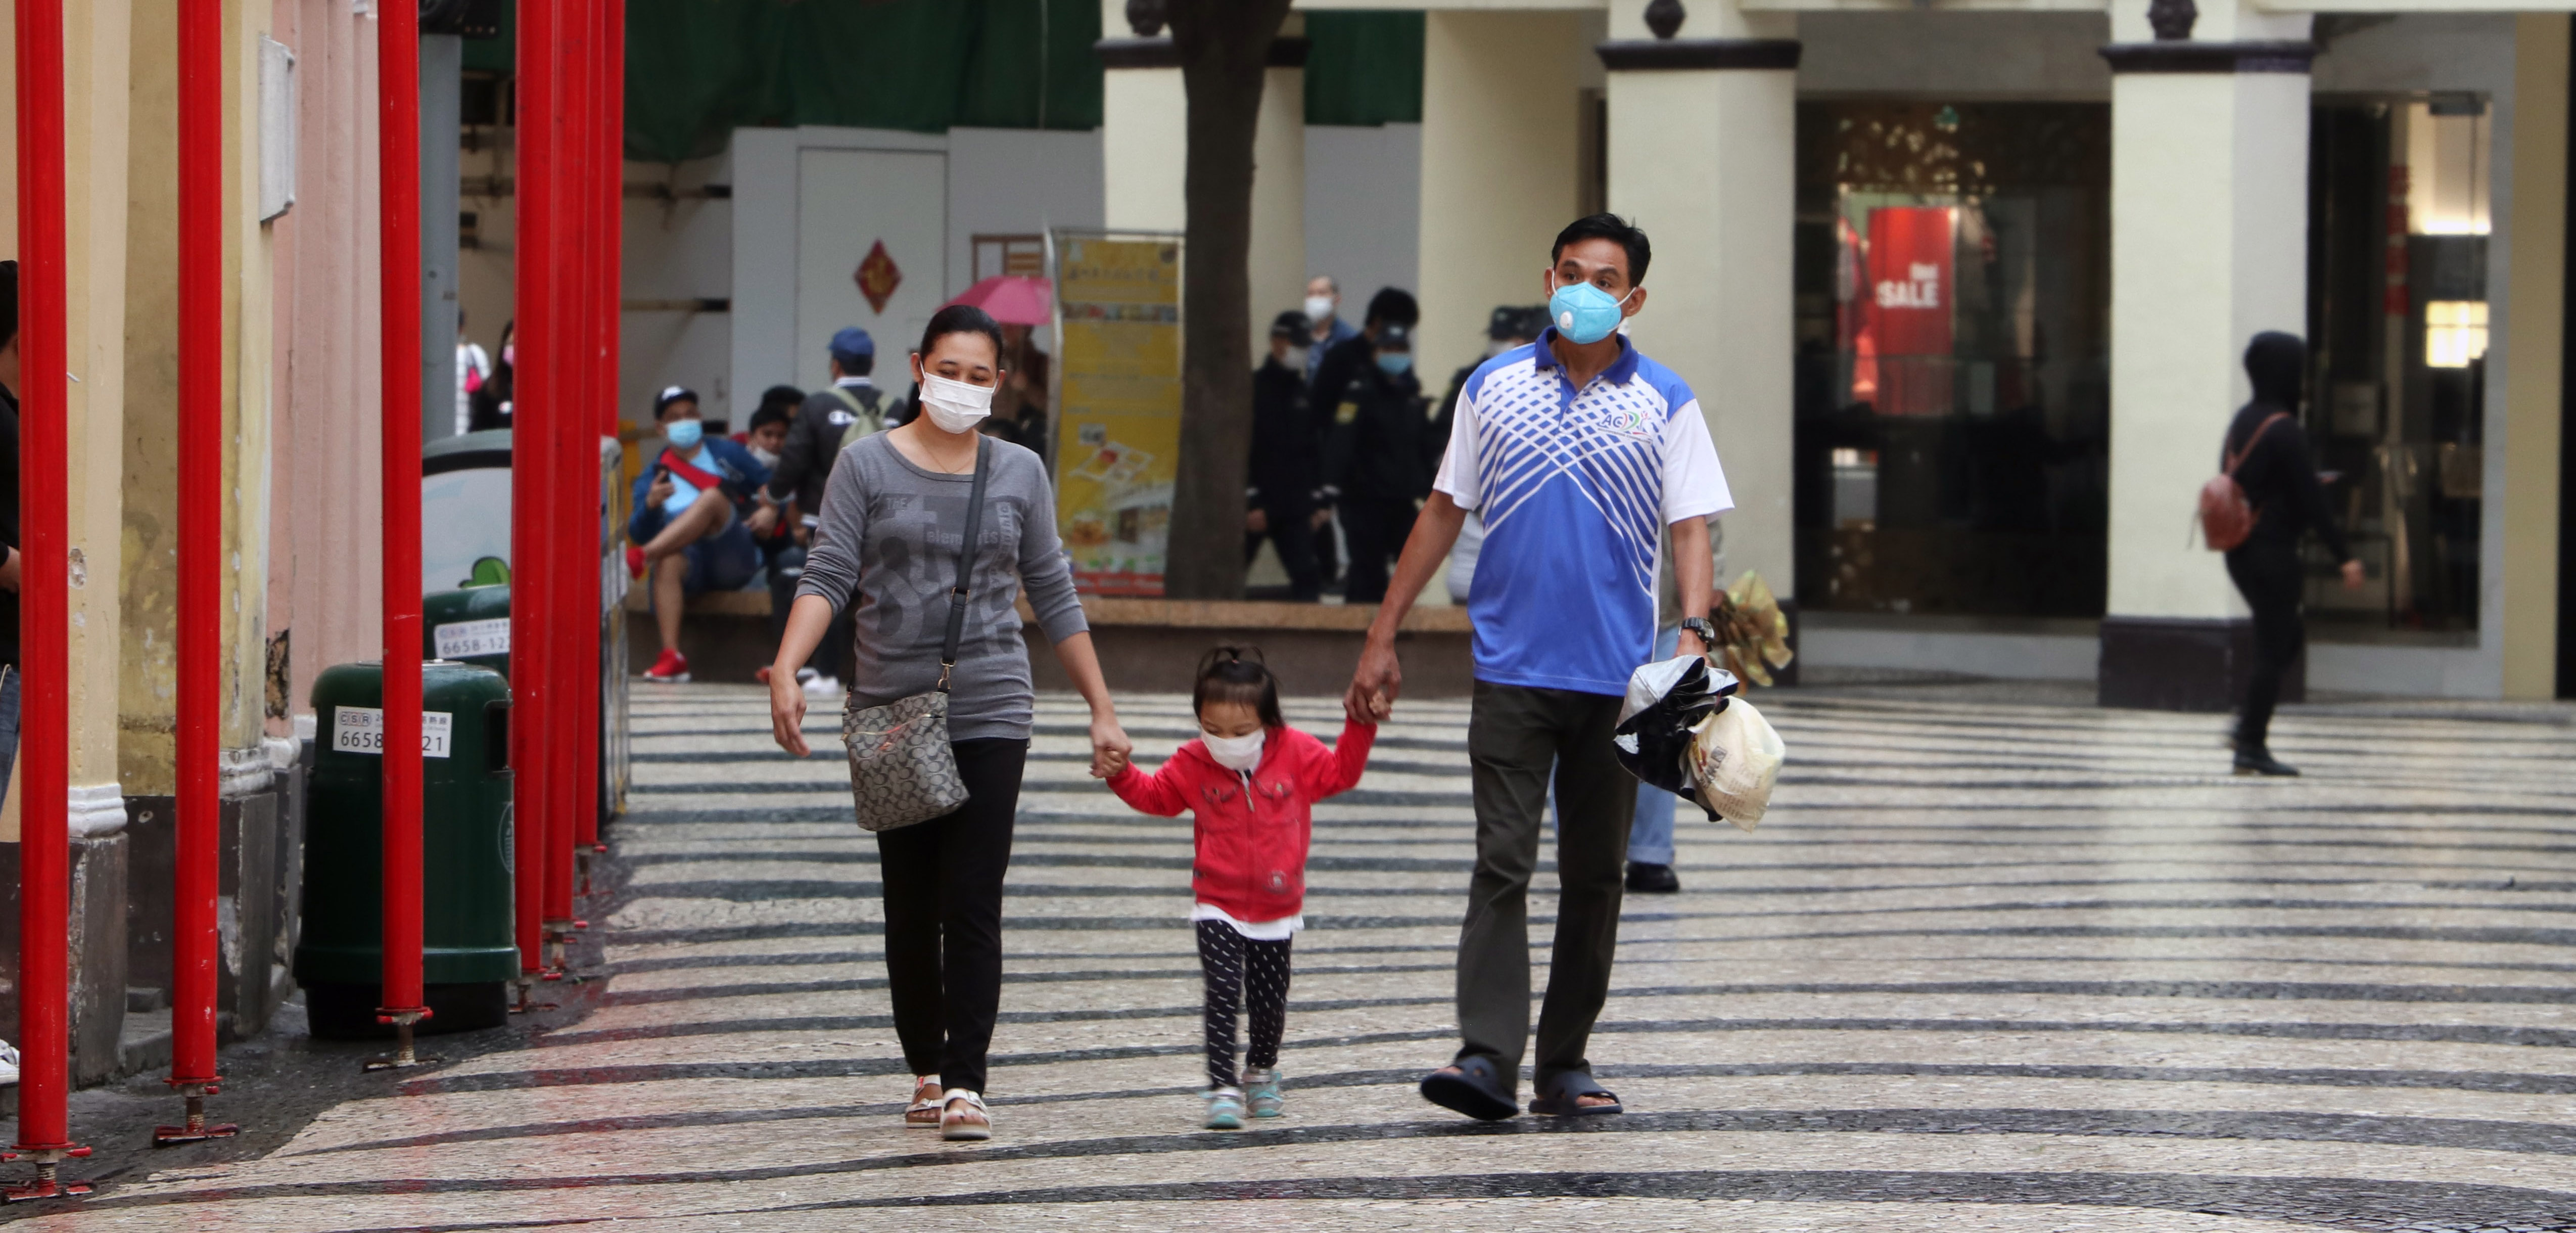 Mother, father and child hold hands as they walk together at a shopping centre, wearing protective face masks.